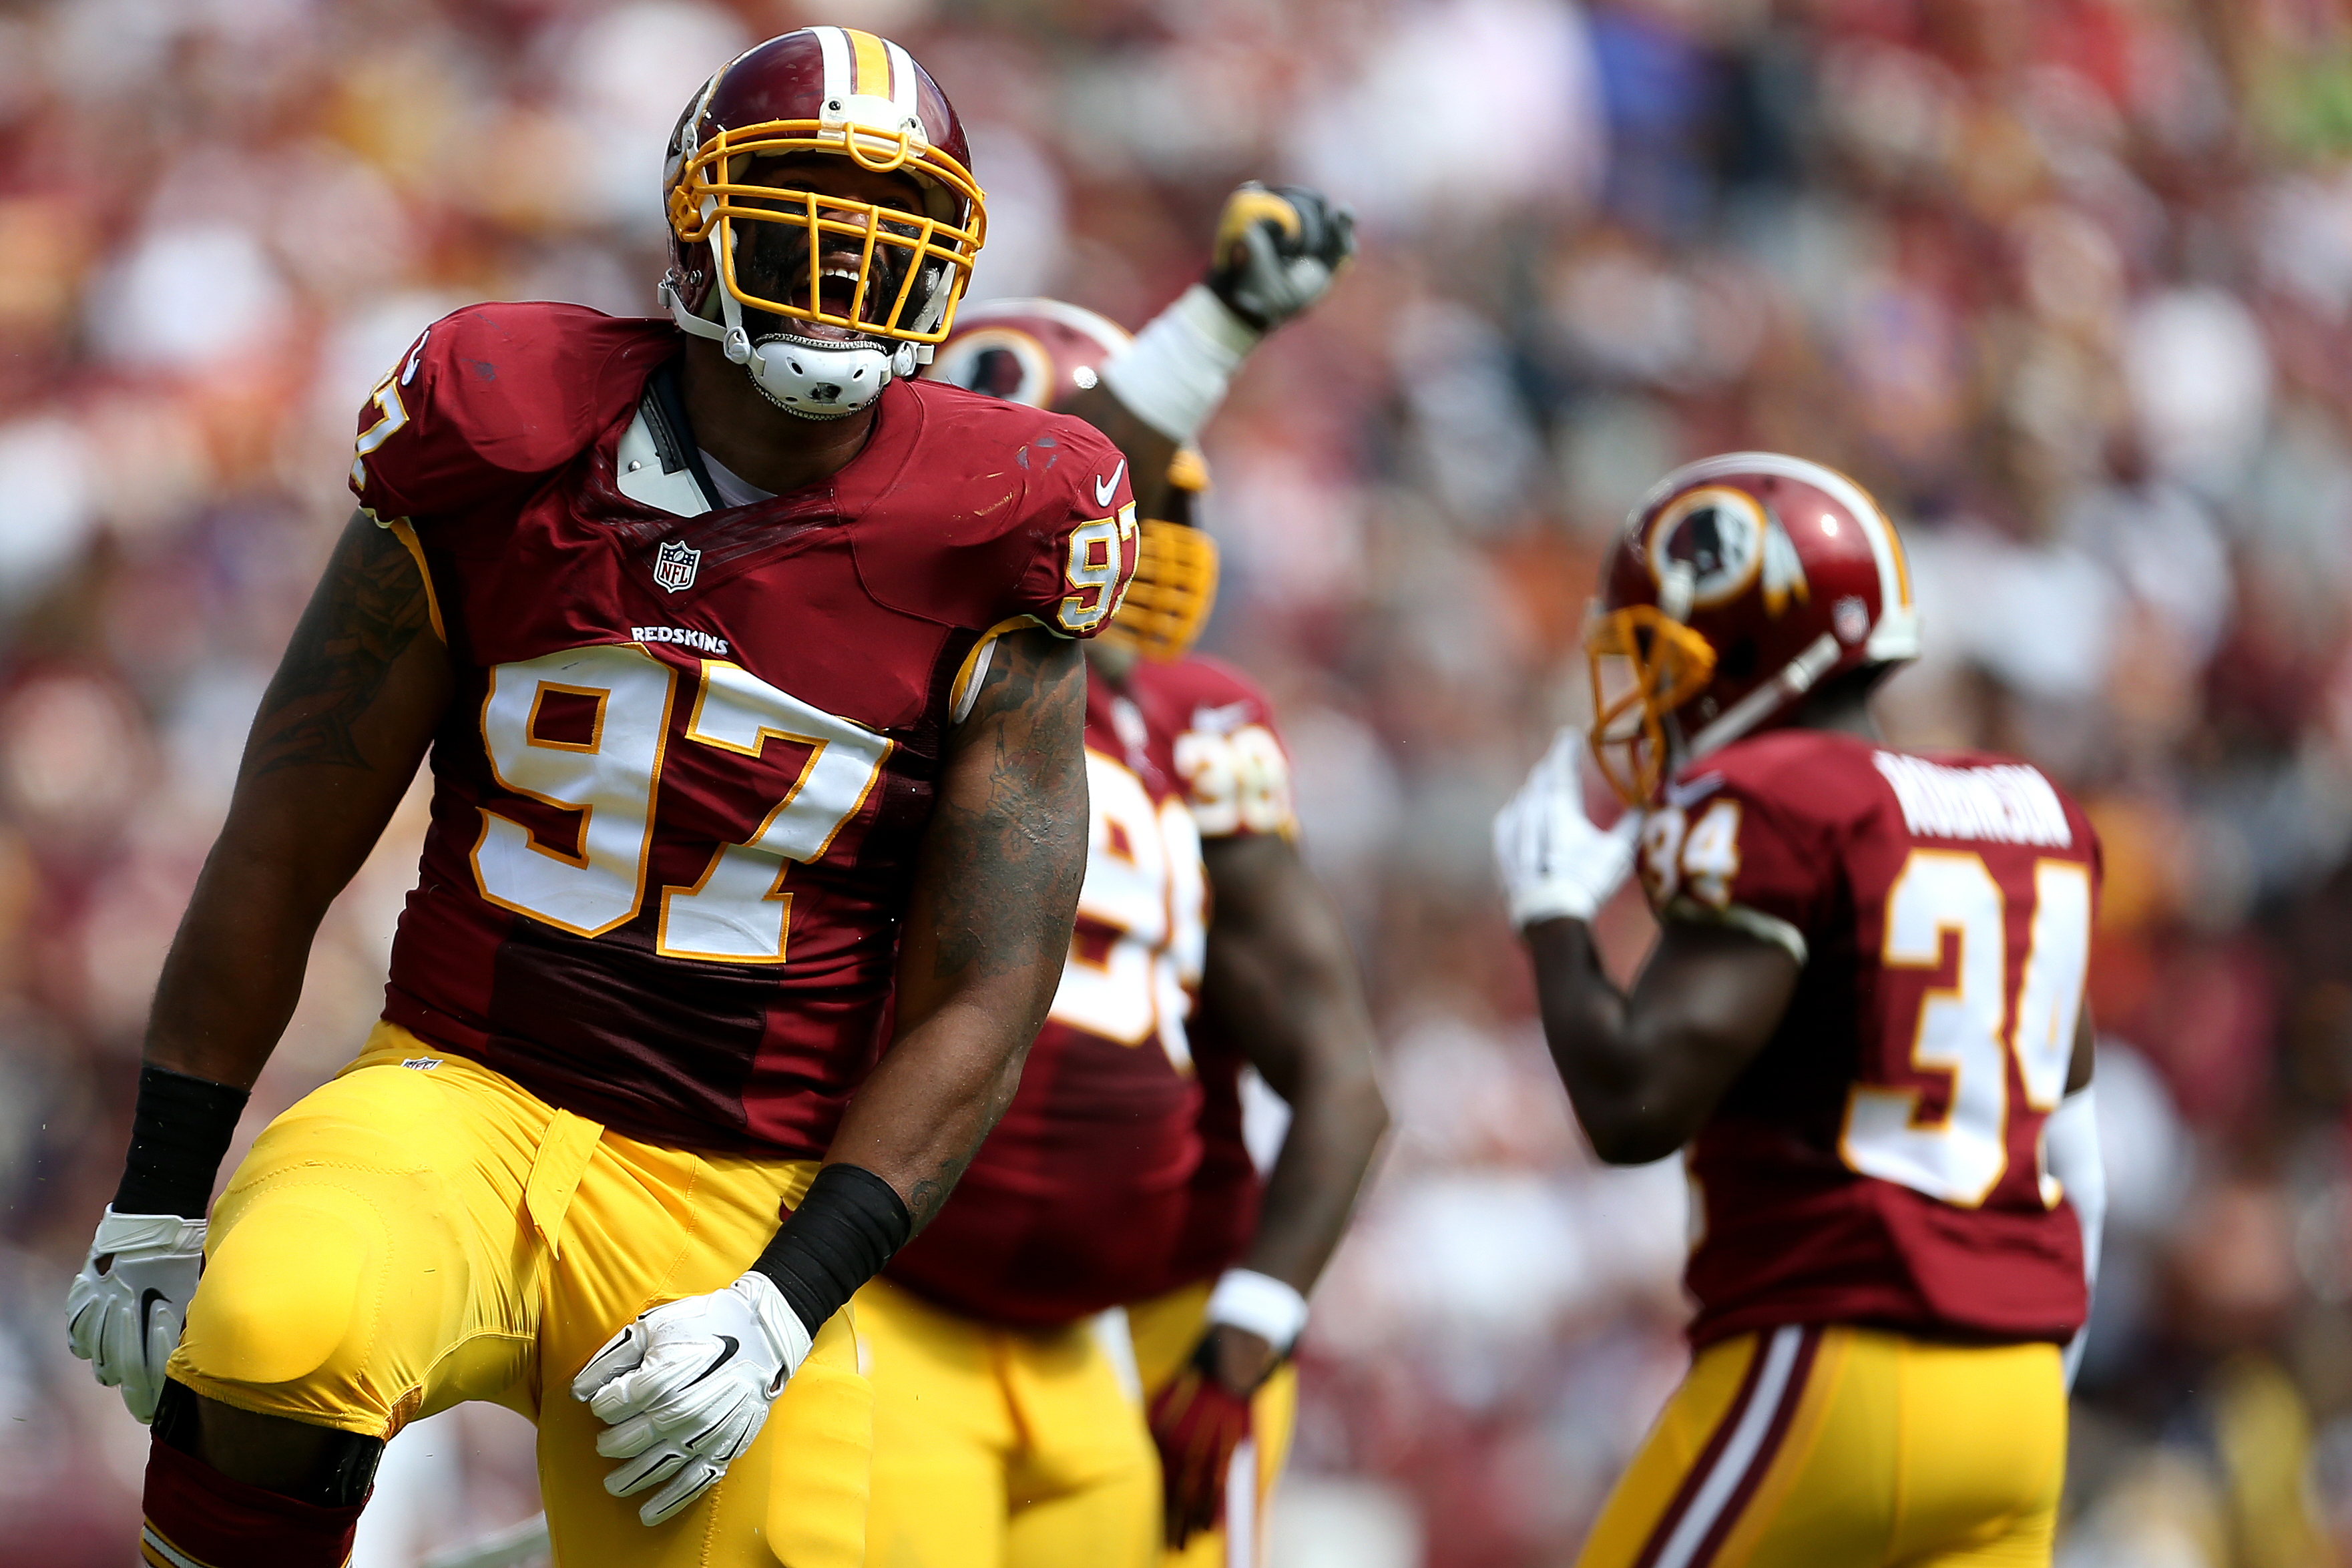 NFL Week 2 Wrap Up: Are the Redskins in line to win the NFC East?